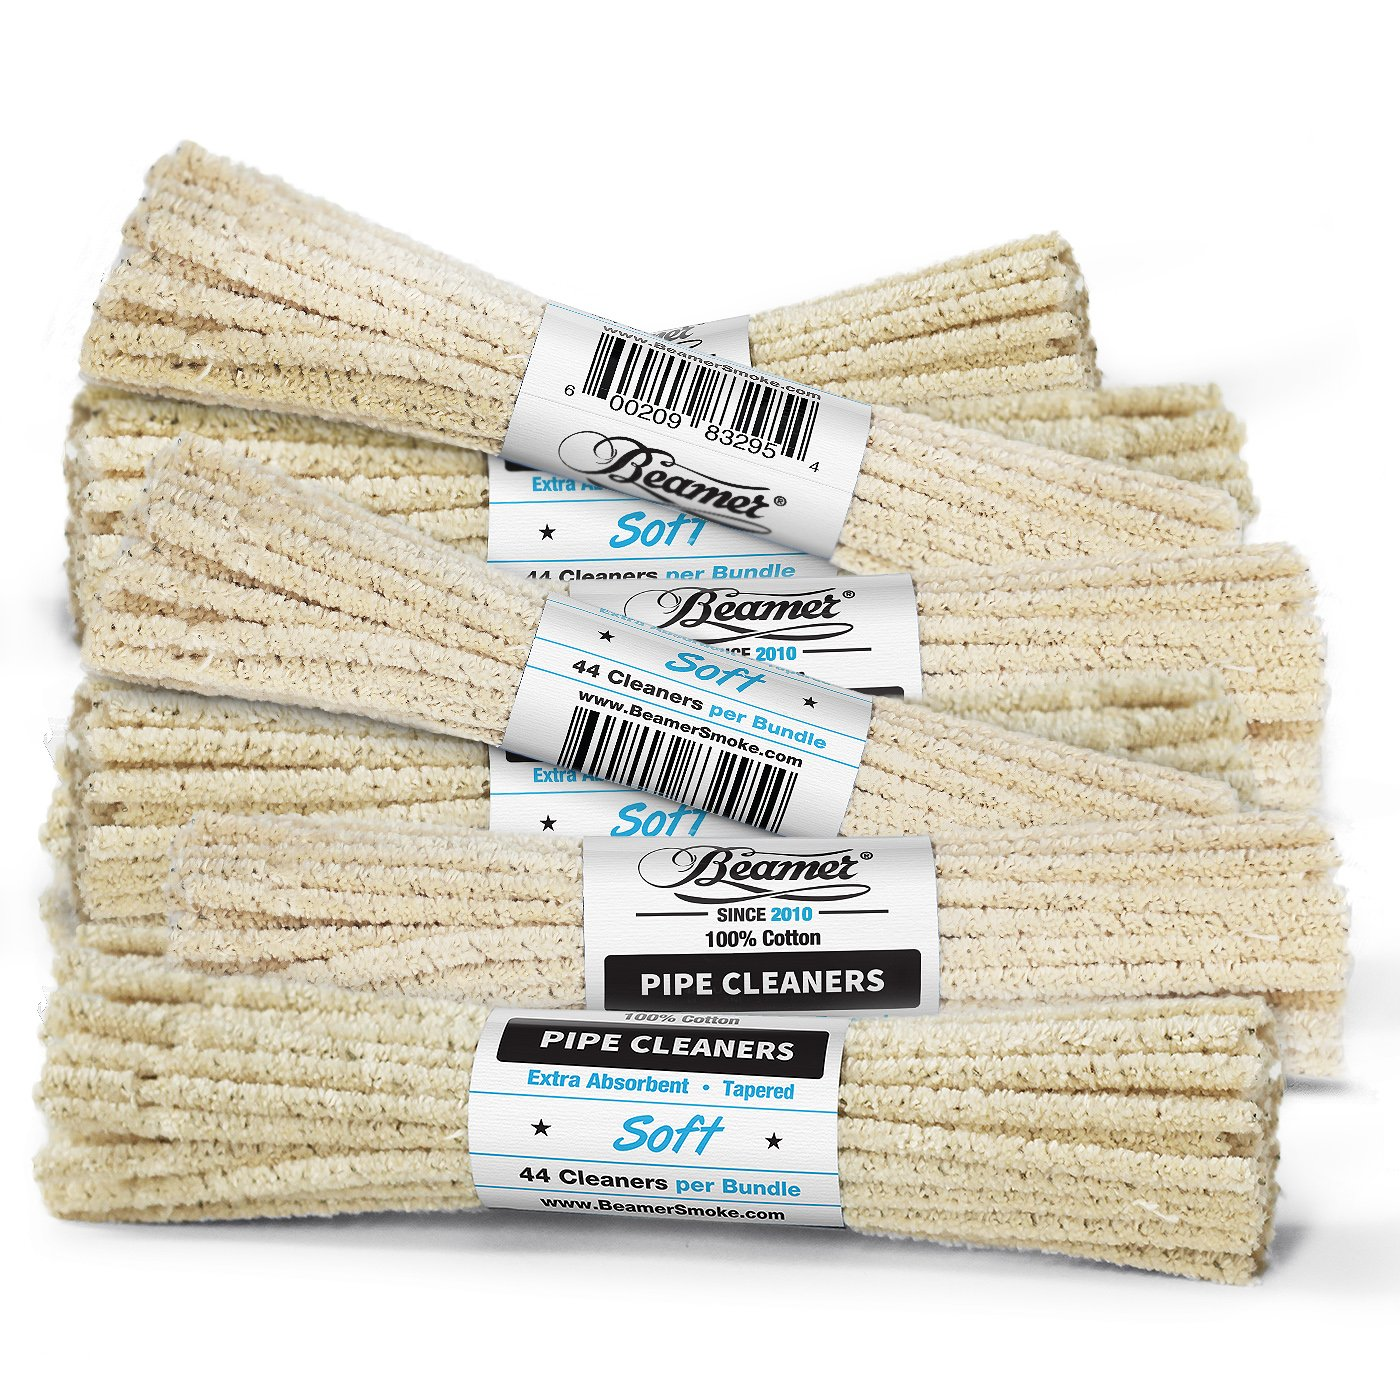 Beamer 6 Inch Unbleached Soft Pipe Cleaners, 572 Pieces, 13 Bundles - 100% Cotton, Extra Absorbent, Tapered, No Colors Or Dyes, Bendable, Reusable + Beamer Smoke Collectable Sticker